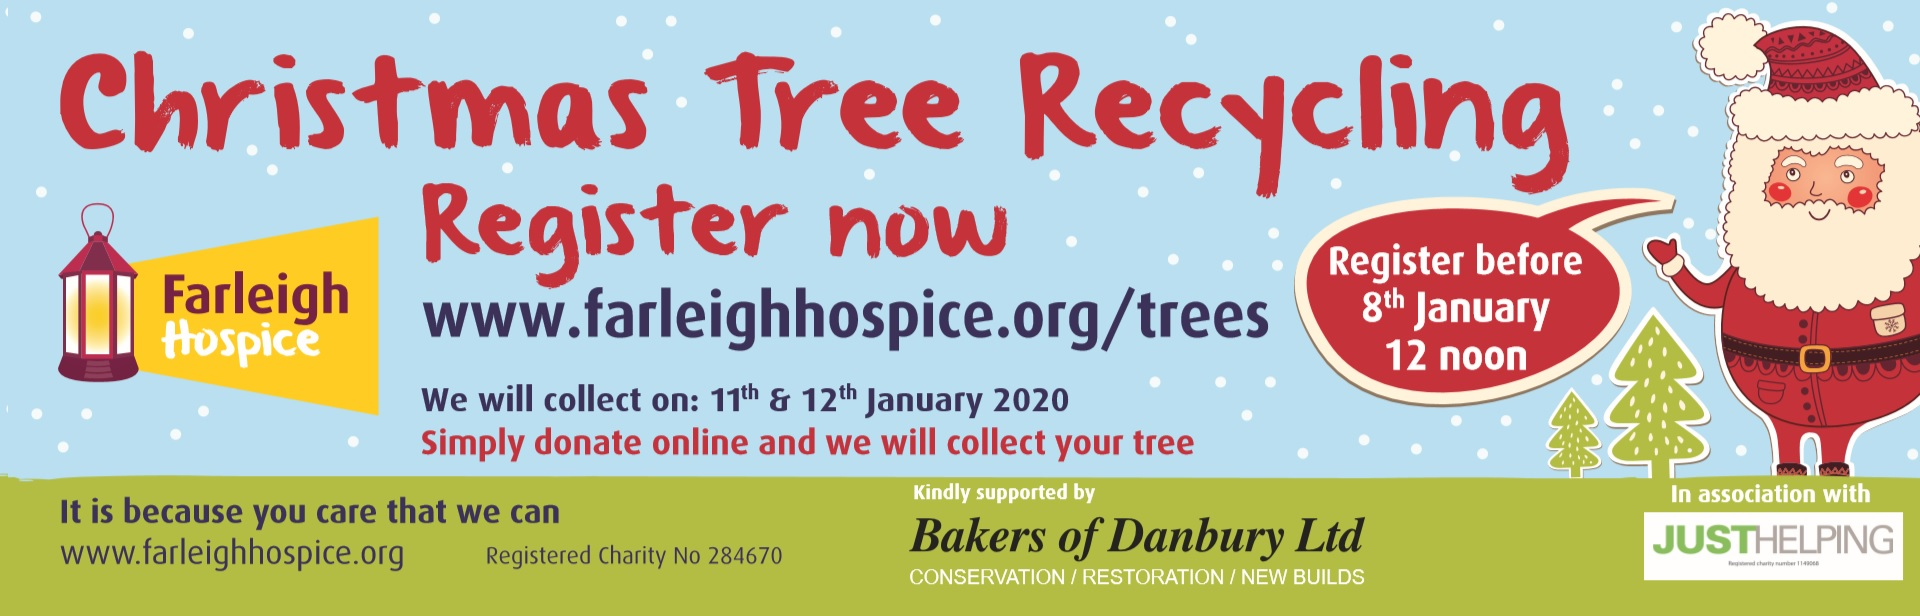 Farleigh Hospice Christmas Tree Recycling